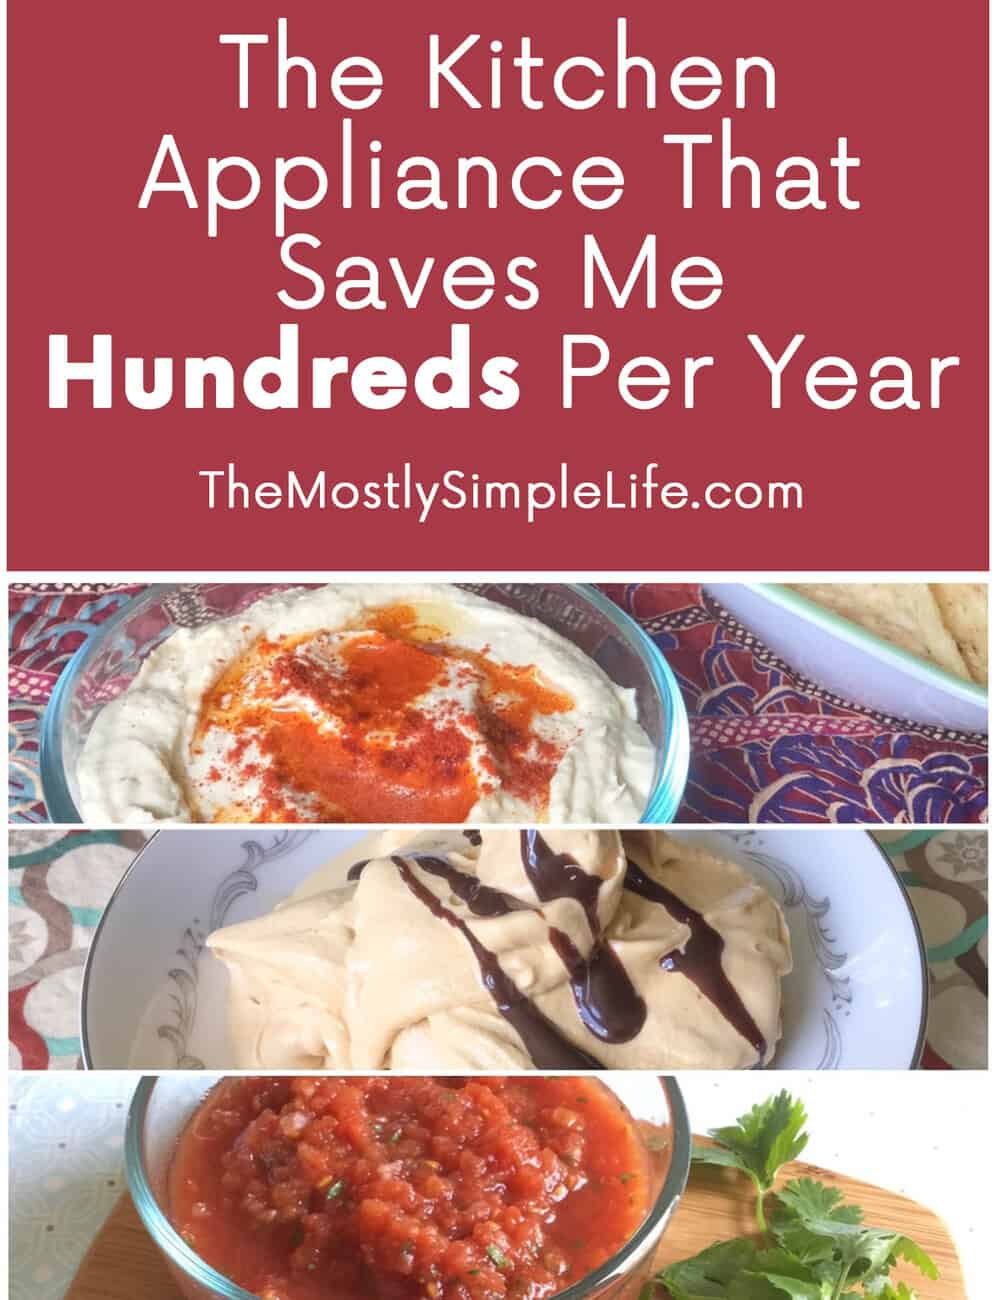 The Kitchen Appliance That Saves Me Hundreds Per Year